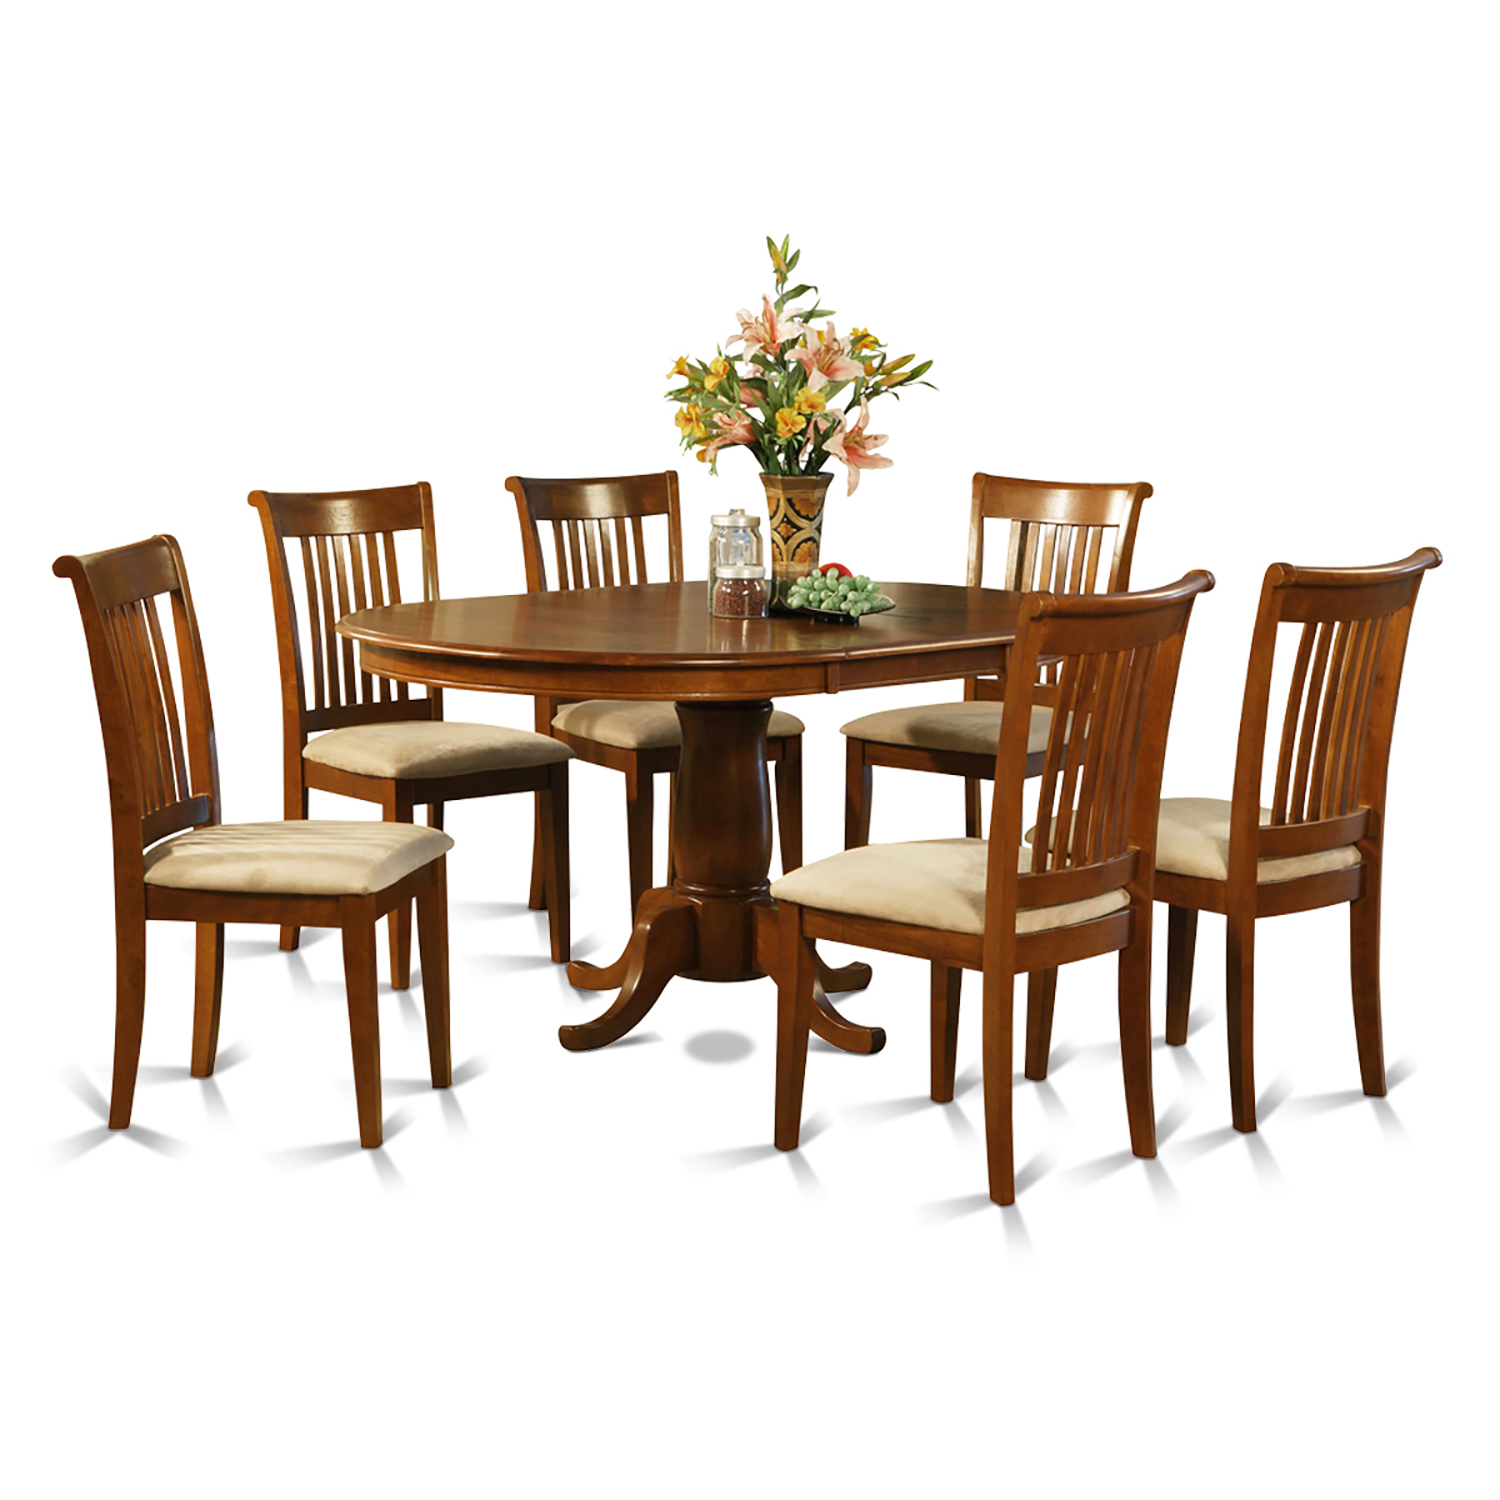 port7 sbr c 7 pc dining room set oval dining table with